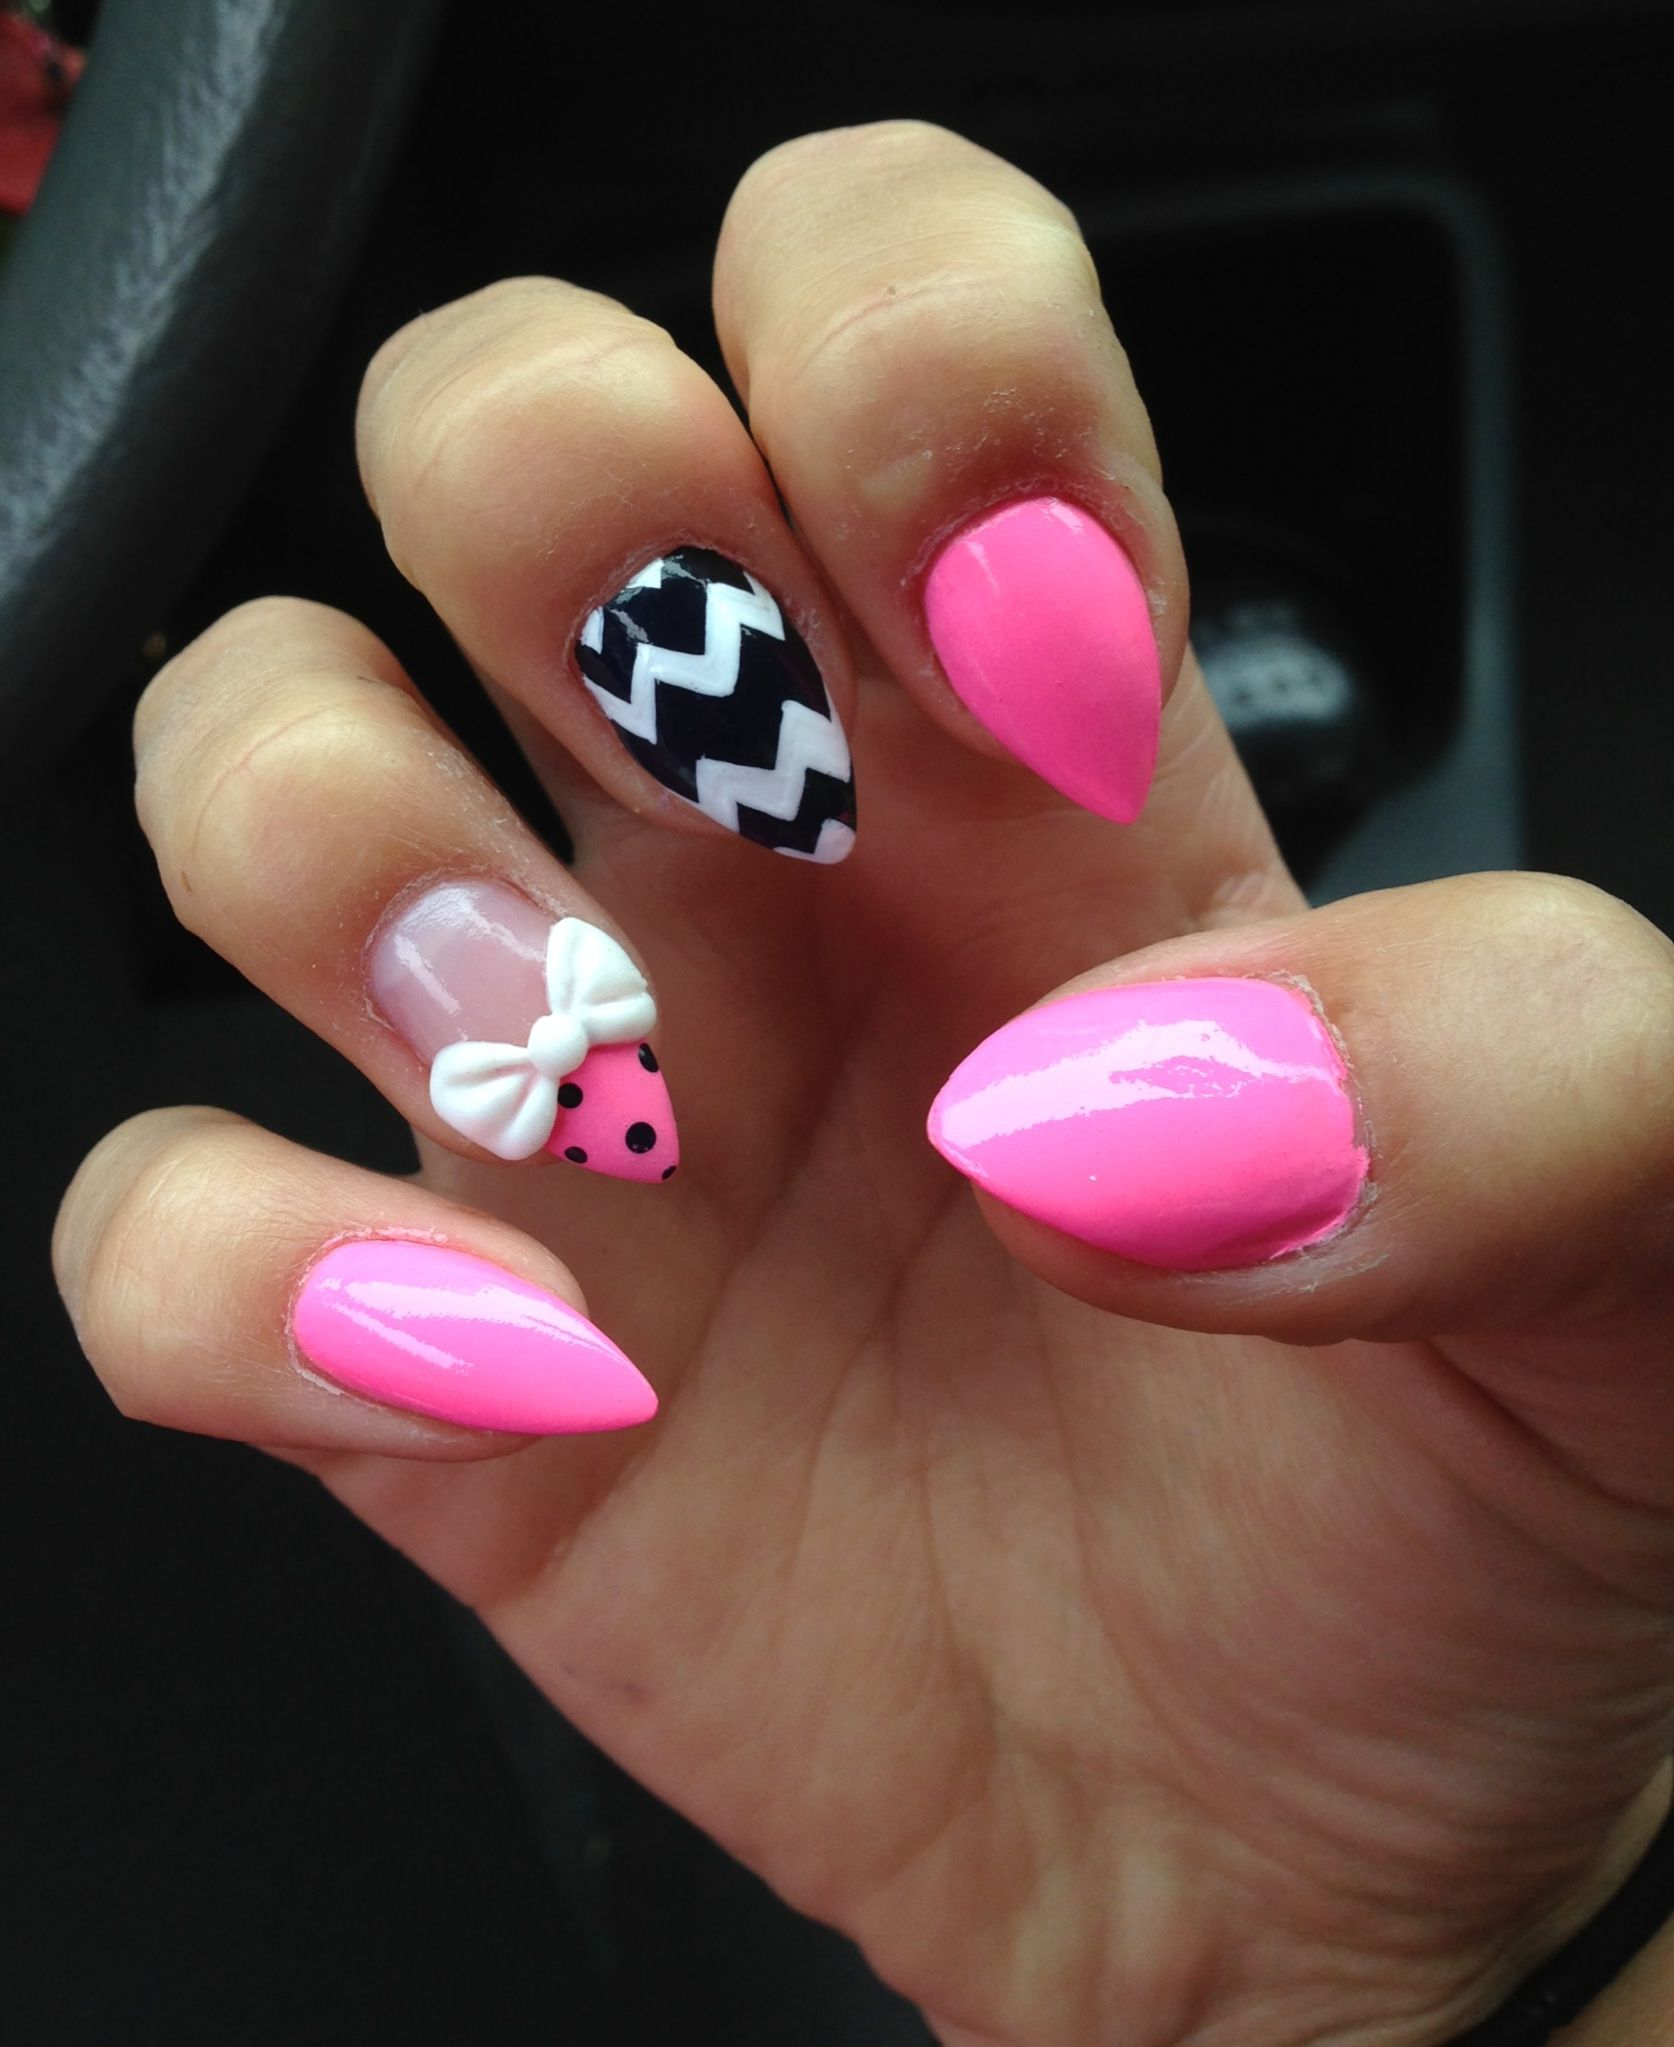 short, pink, stiletto nails with a 3d acrylic bow and jem cluster